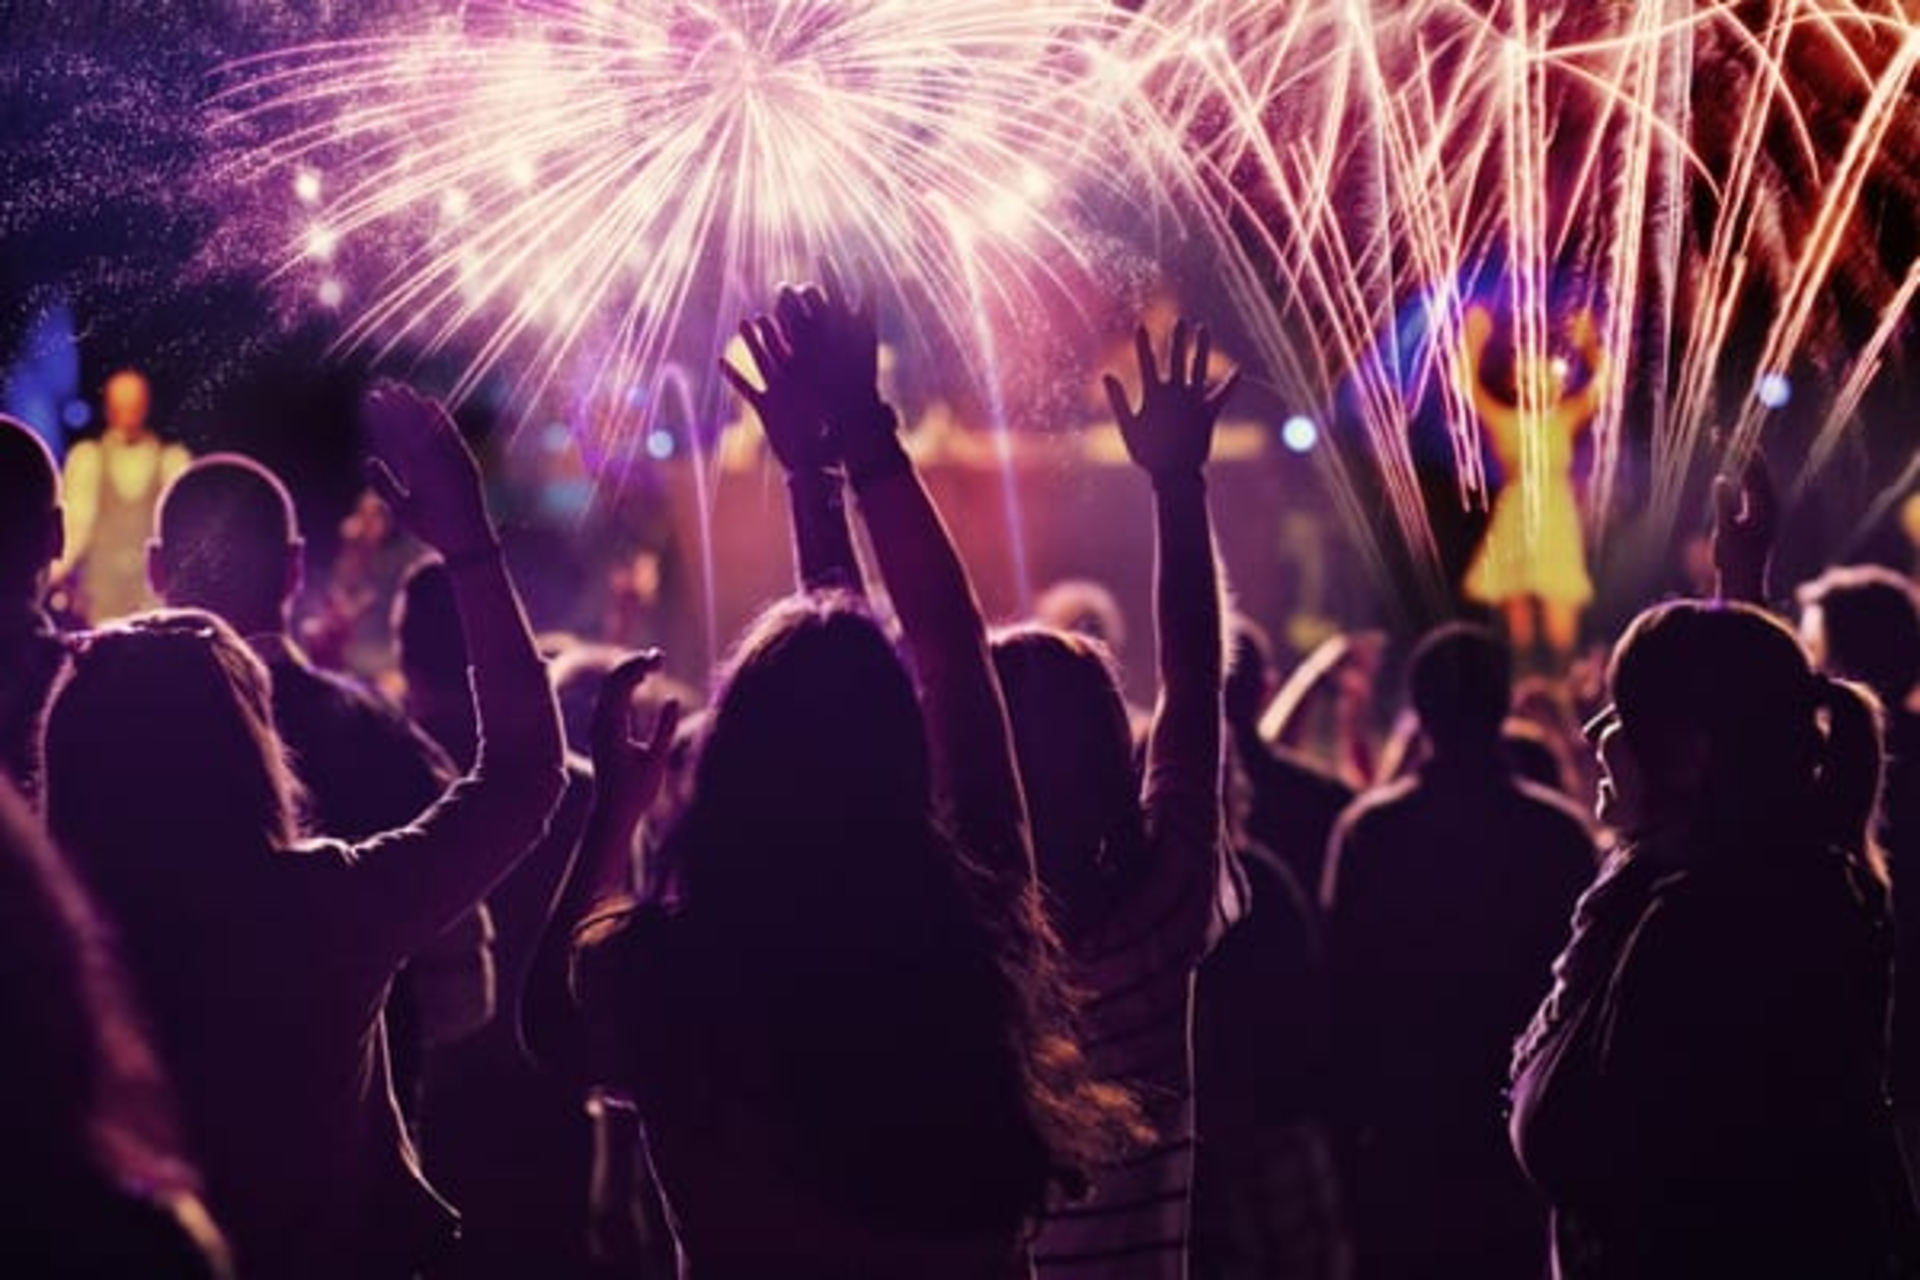 Is Making Homemade Fireworks Illegal? image